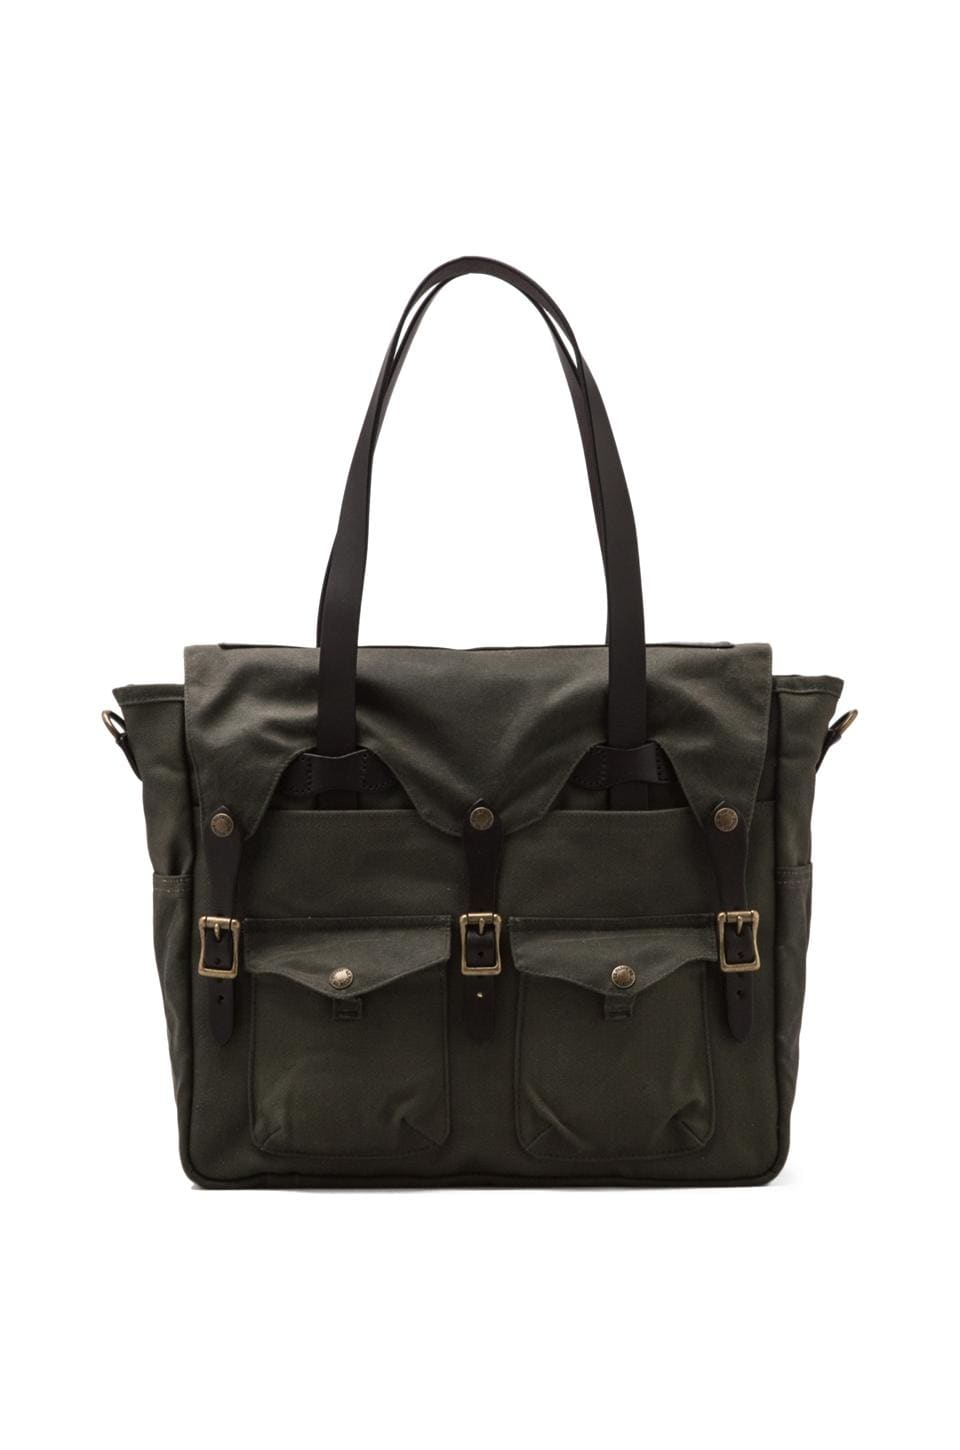 Filson Tote Briefcase in Otter Green/ Otter Green